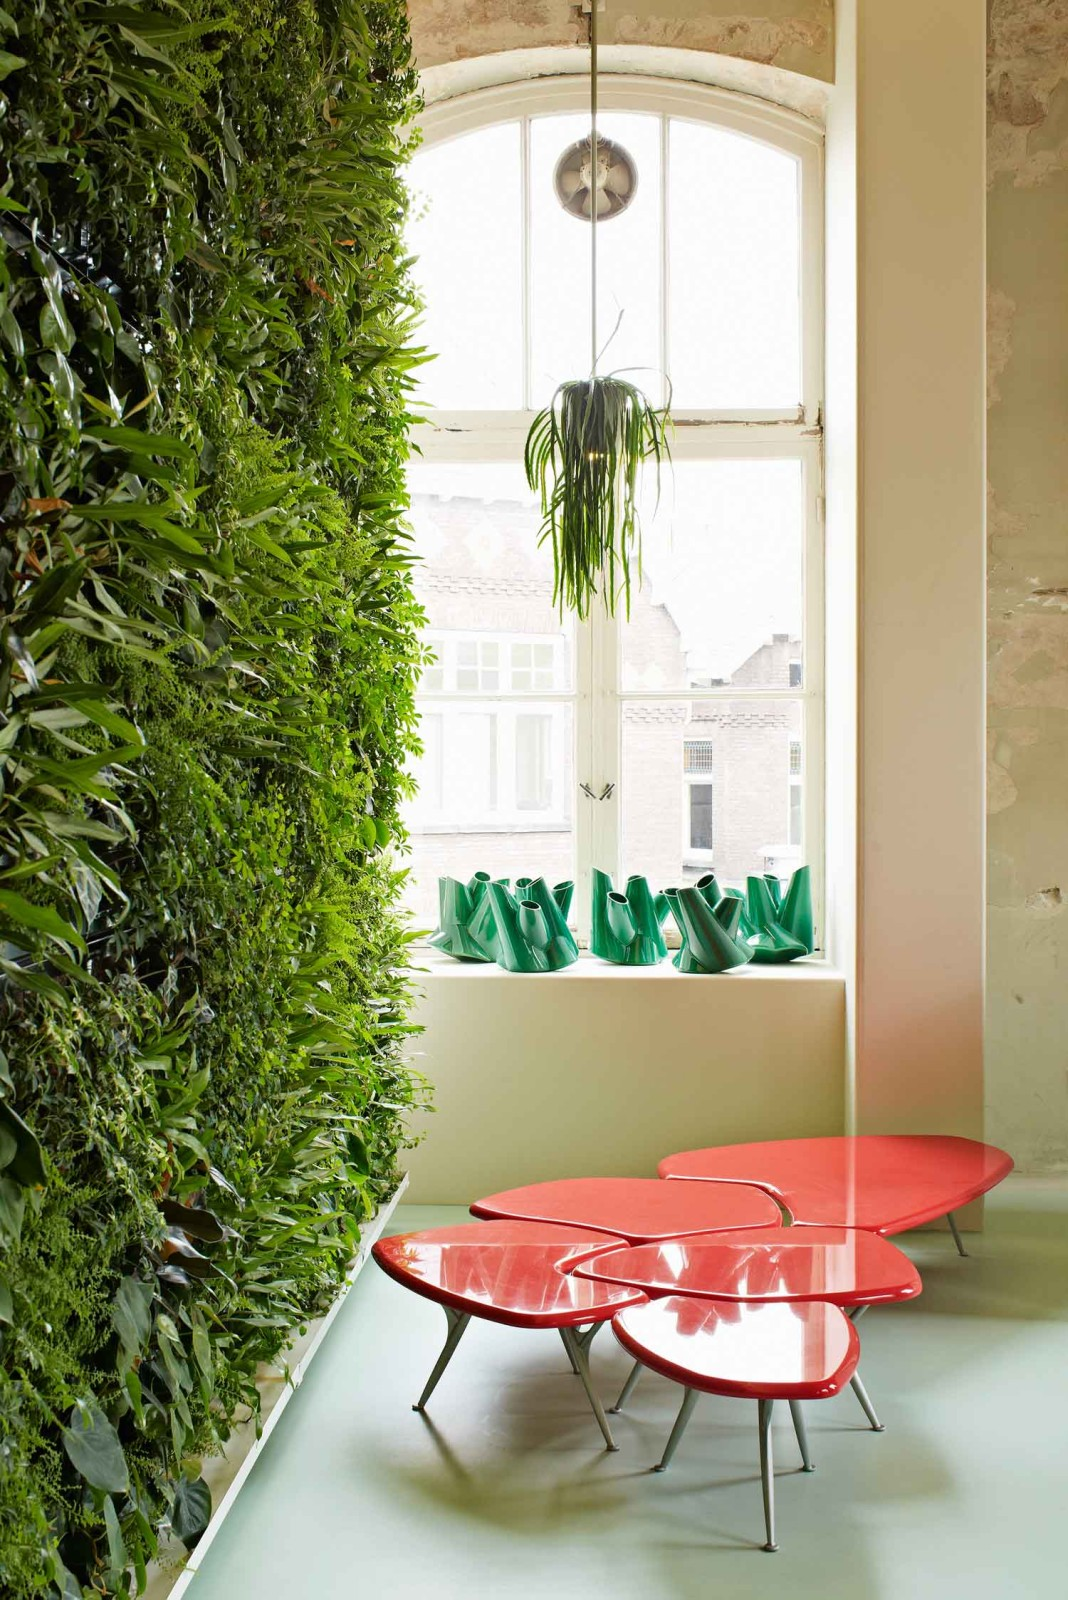 Bucketlight tropical plant fixtures by Roderick Vos